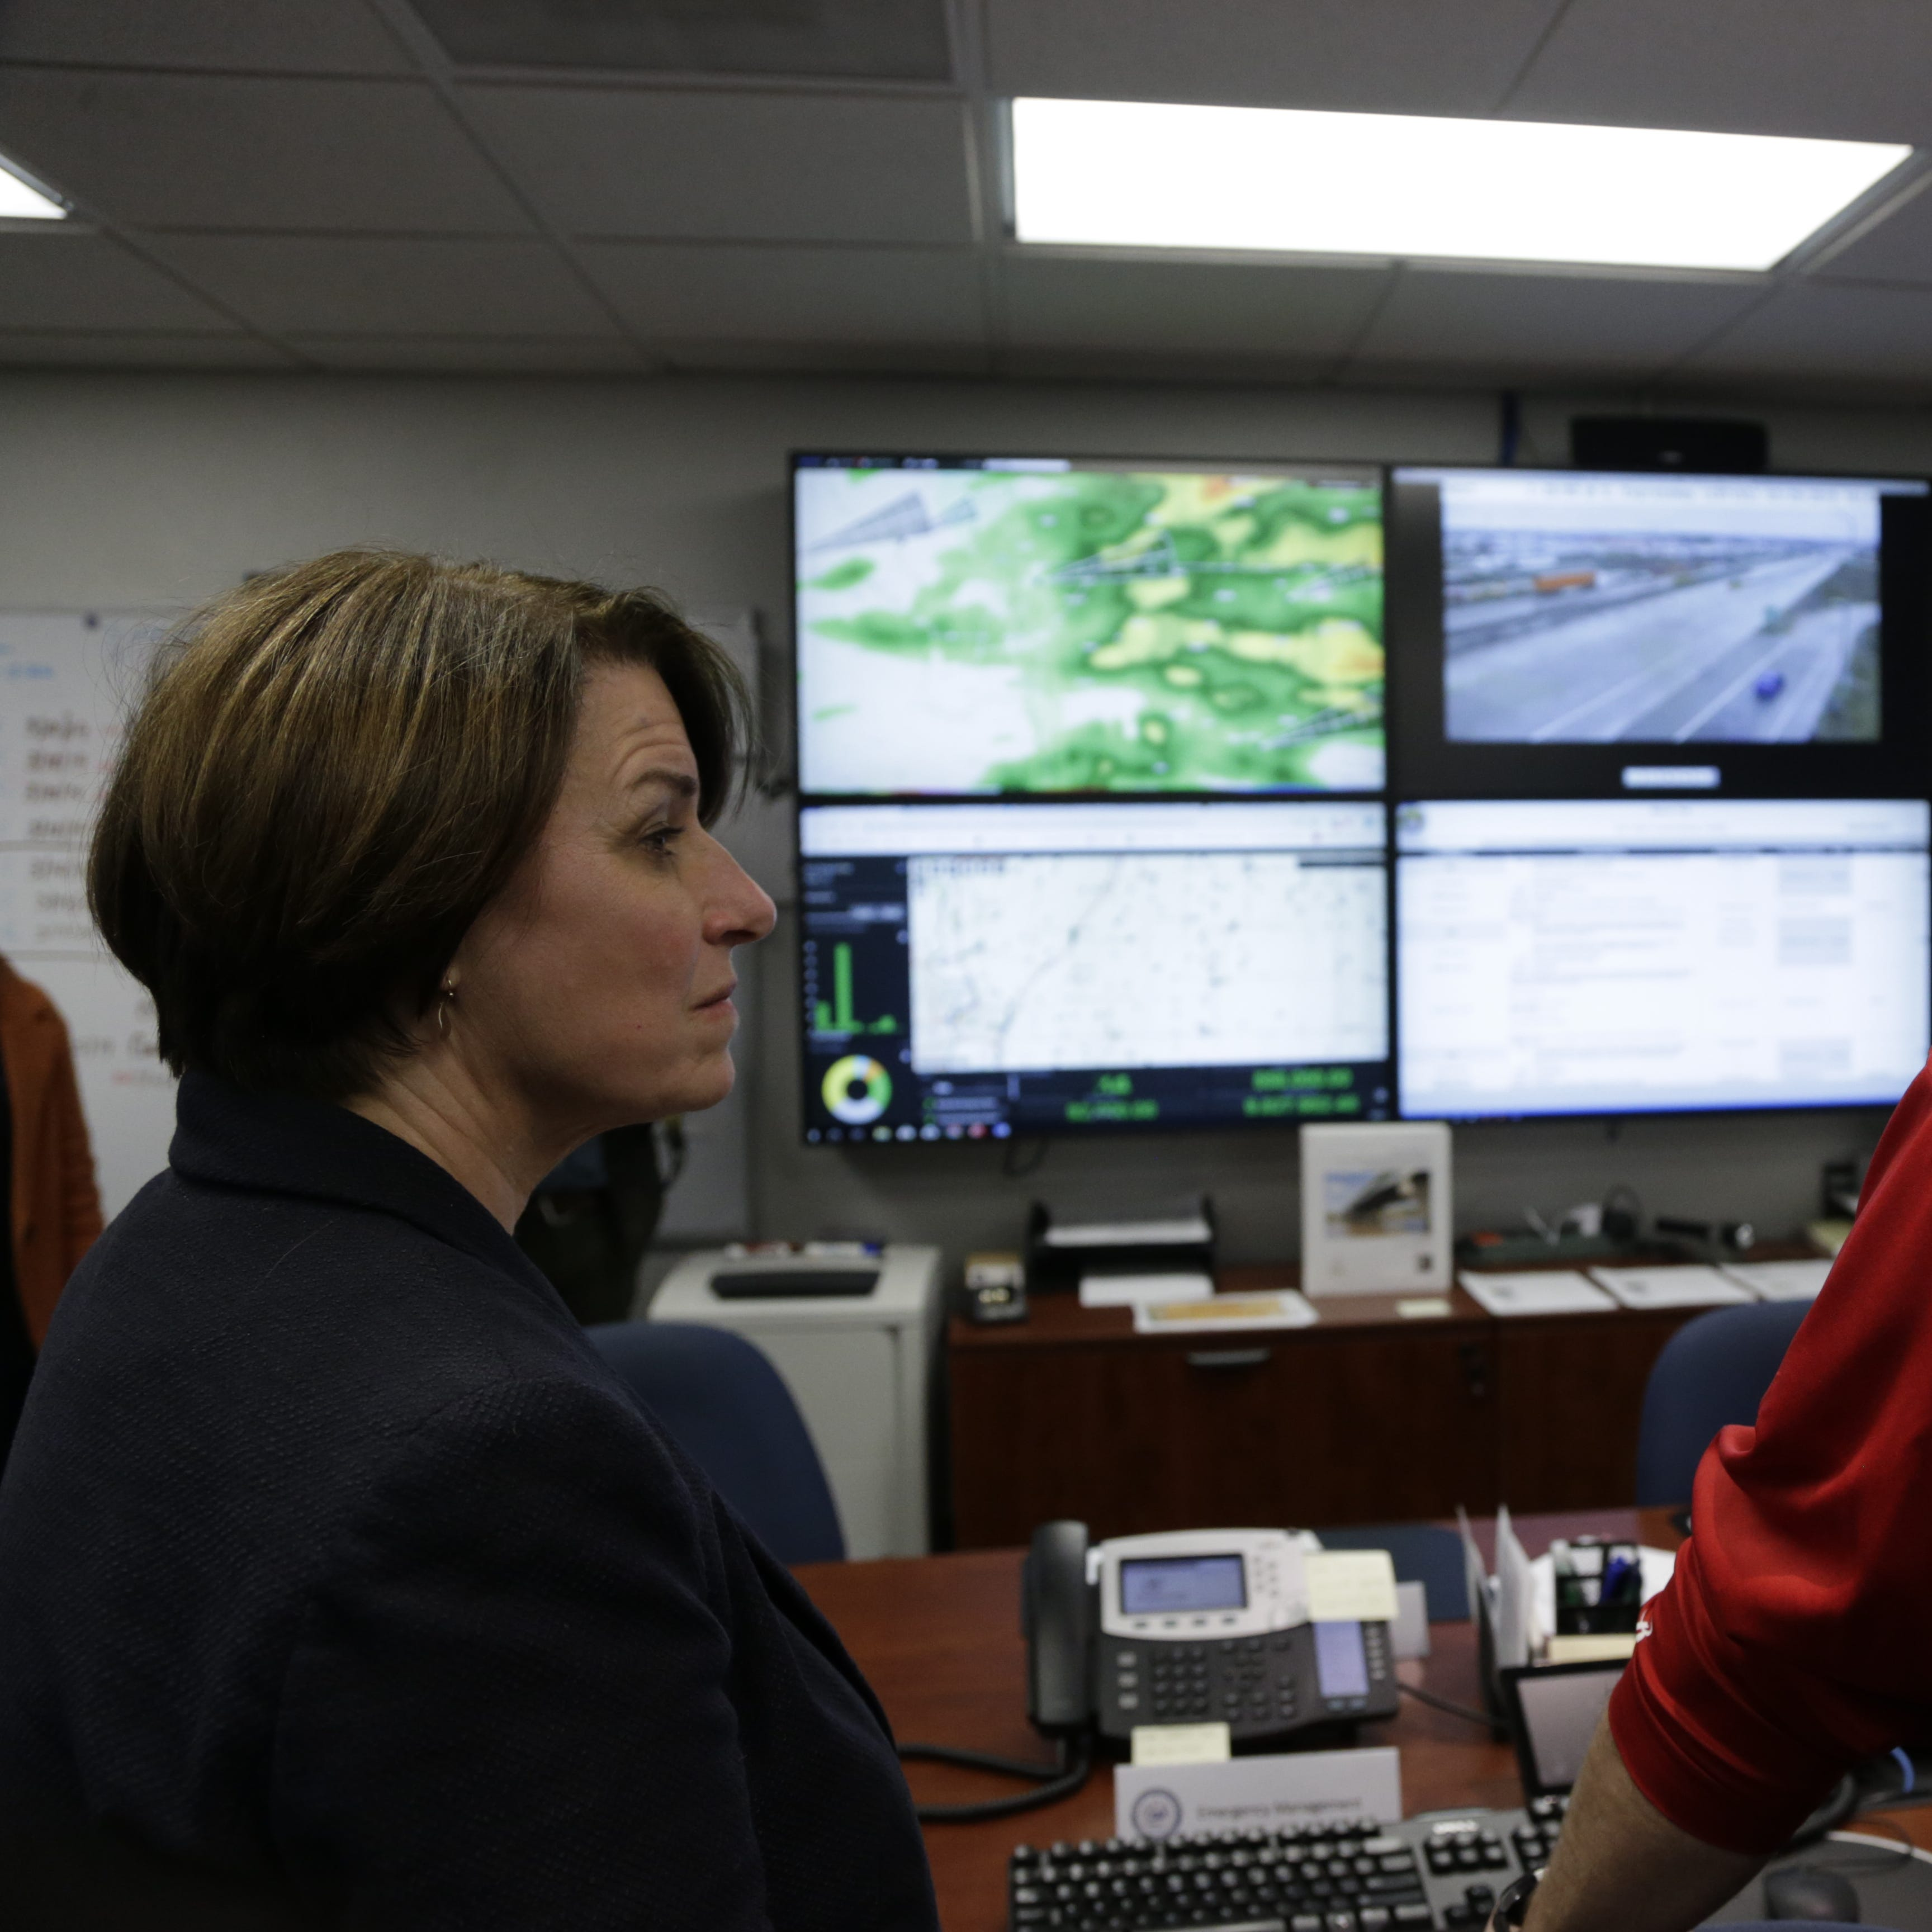 Committing to spend $1 trillion on infrastructure, Amy Klobuchar flaunts tech expertise in Iowa rural broadband talks